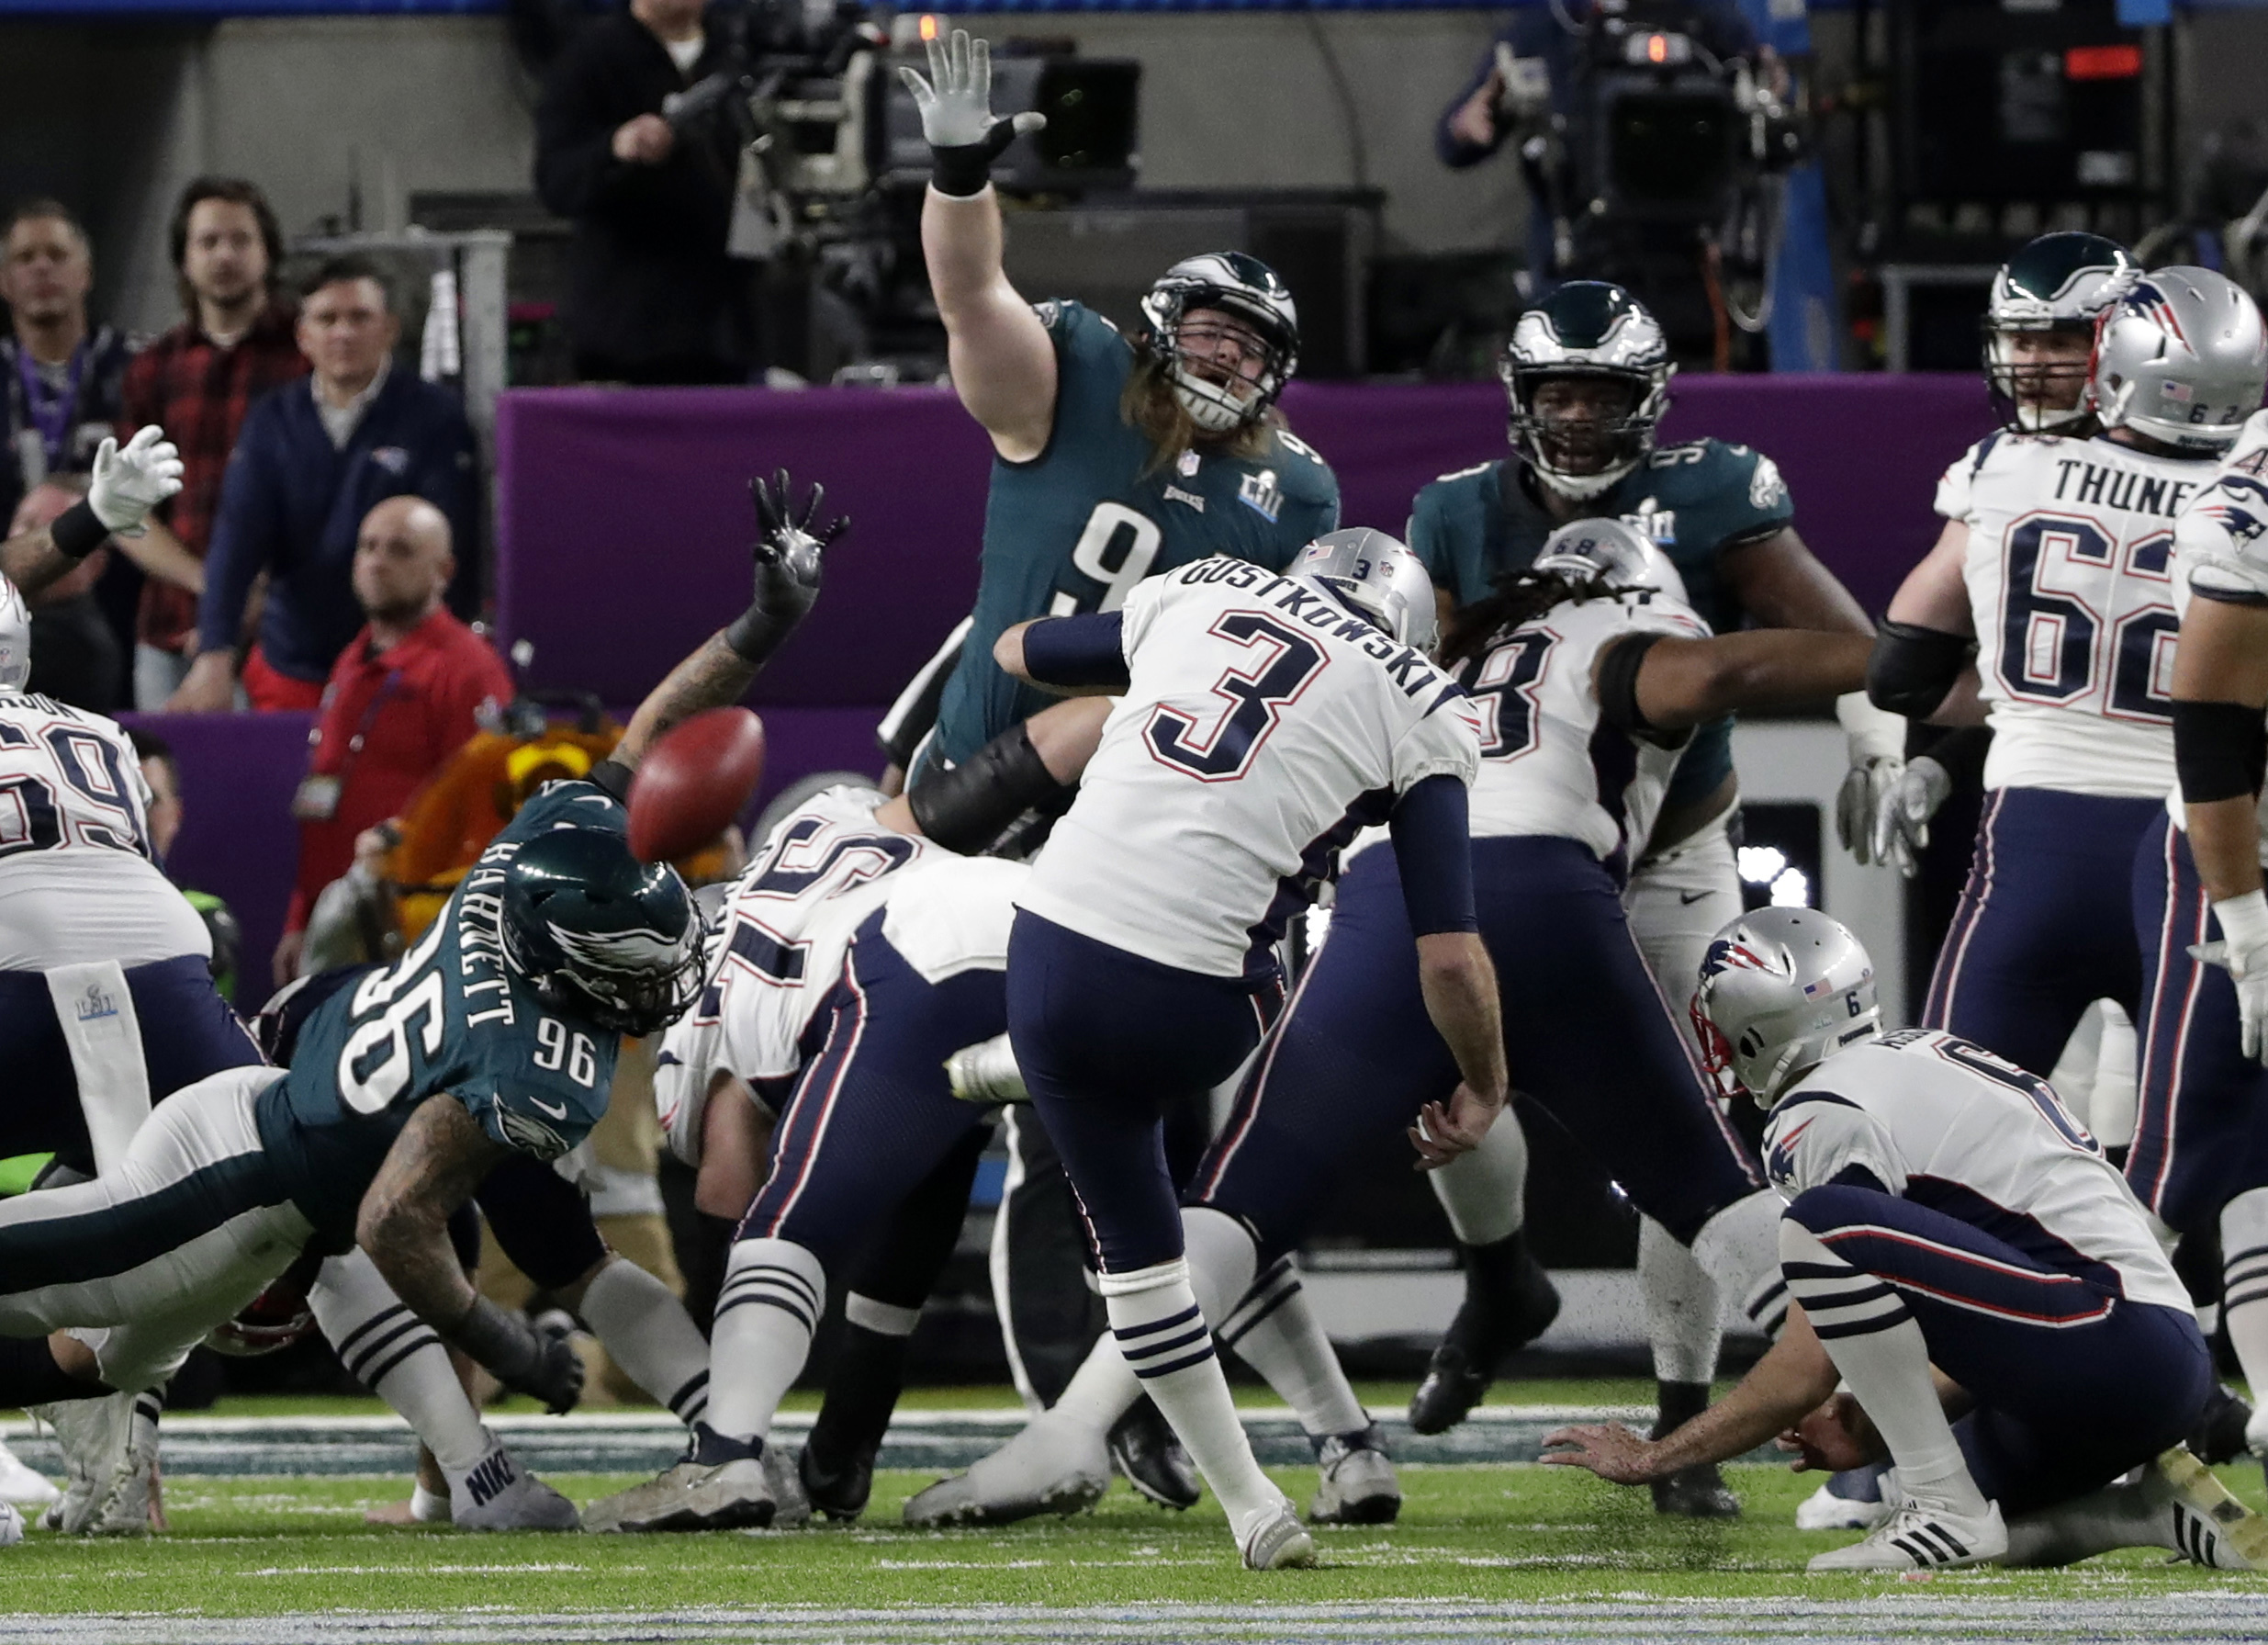 <div class='meta'><div class='origin-logo' data-origin='AP'></div><span class='caption-text' data-credit='AP Photo/Tony Gutierrez'>New England Patriots kicker Stephen Gostkowski (3), misses a field goal during the first half of the NFL Super Bowl 52 , Sunday, Feb. 4, 2018, in Minneapolis.</span></div>